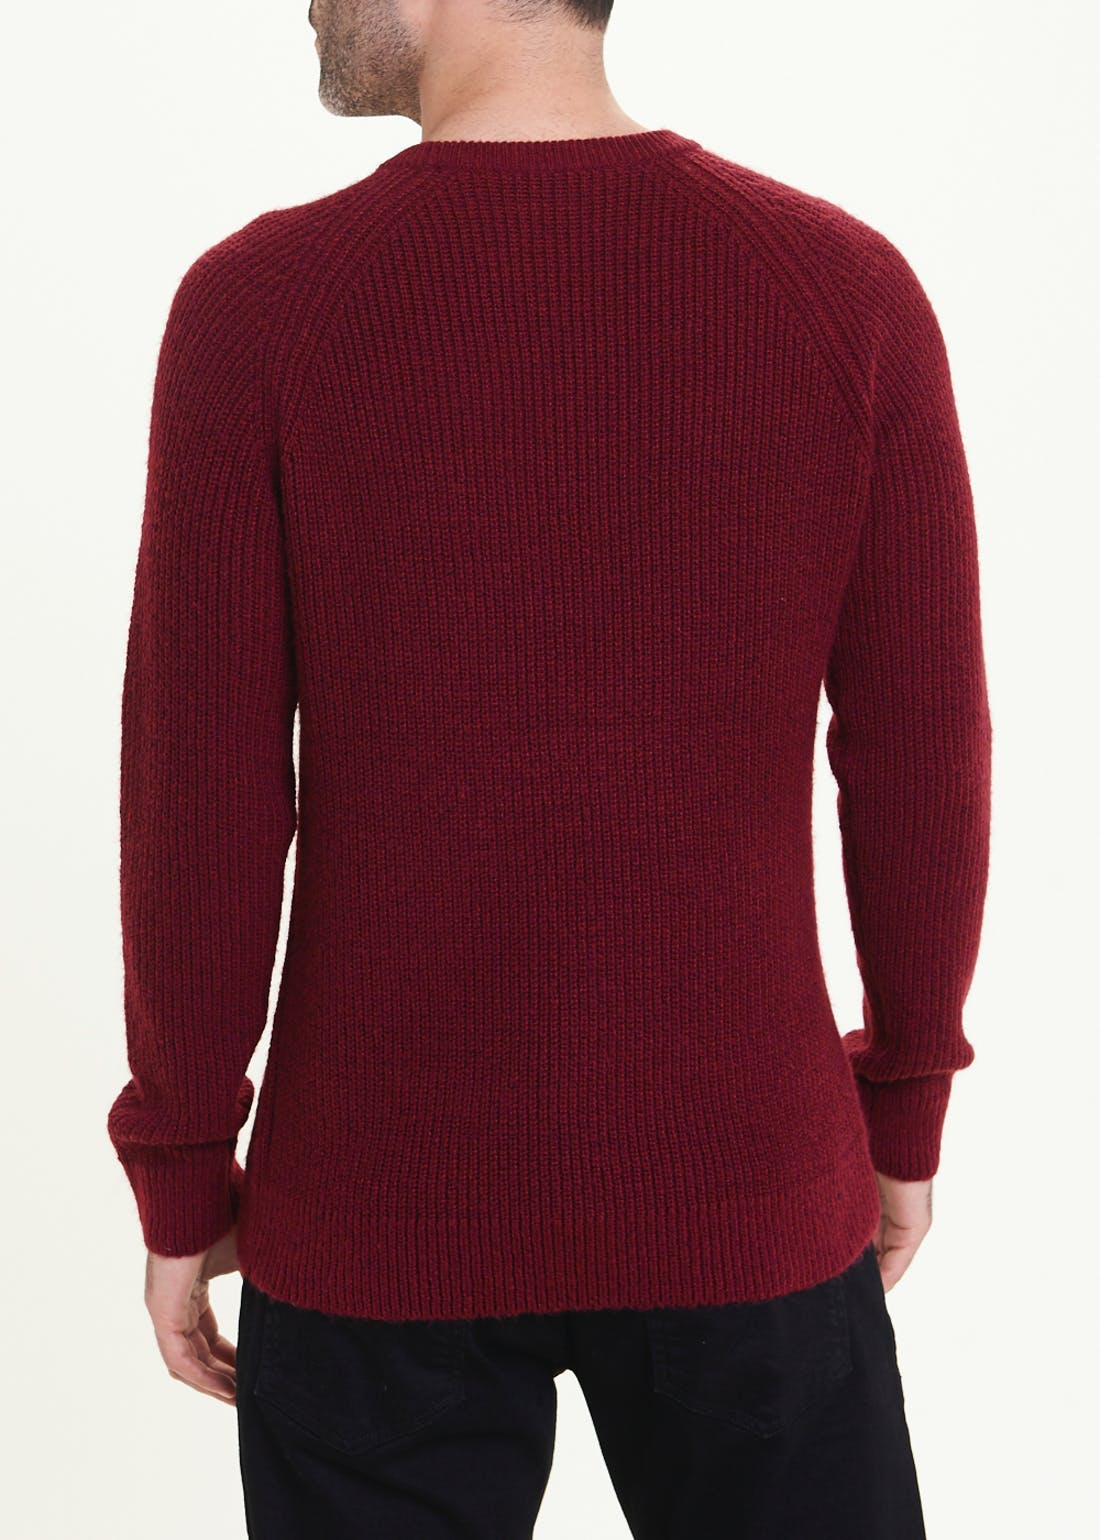 Lincoln Soft Touch Rib Knit Jumper